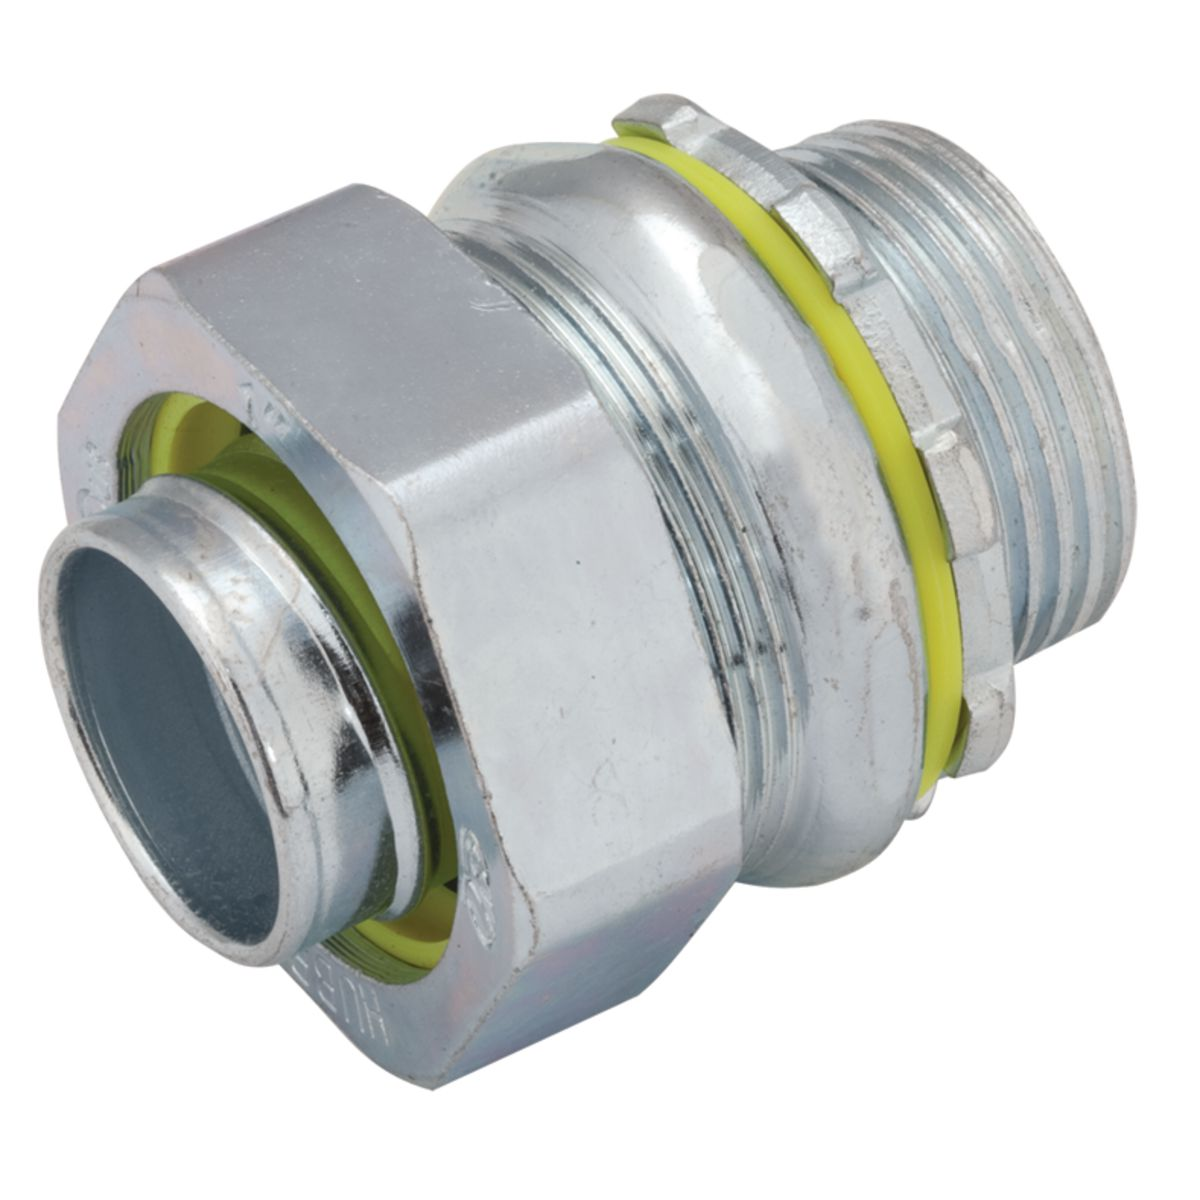 Hubbell K050 Conduit Connector